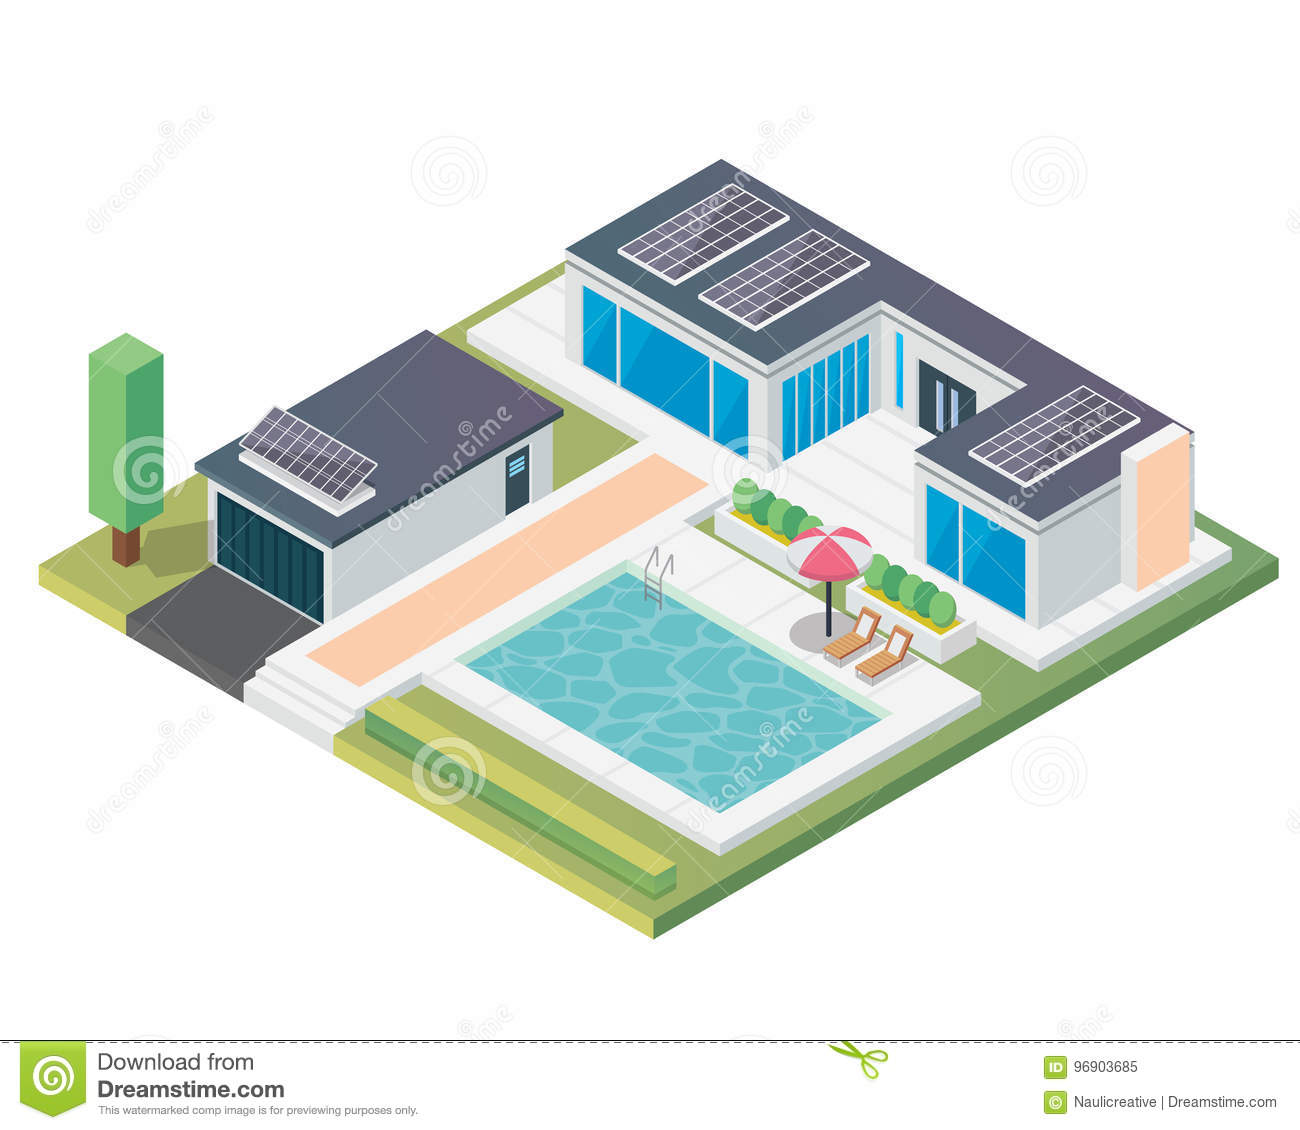 Modern Luxury Isometric Green Eco Friendly House With Solar Panel Diagram Suitable For Diagrams Infographics Illustration And Other Graphic Related Assets